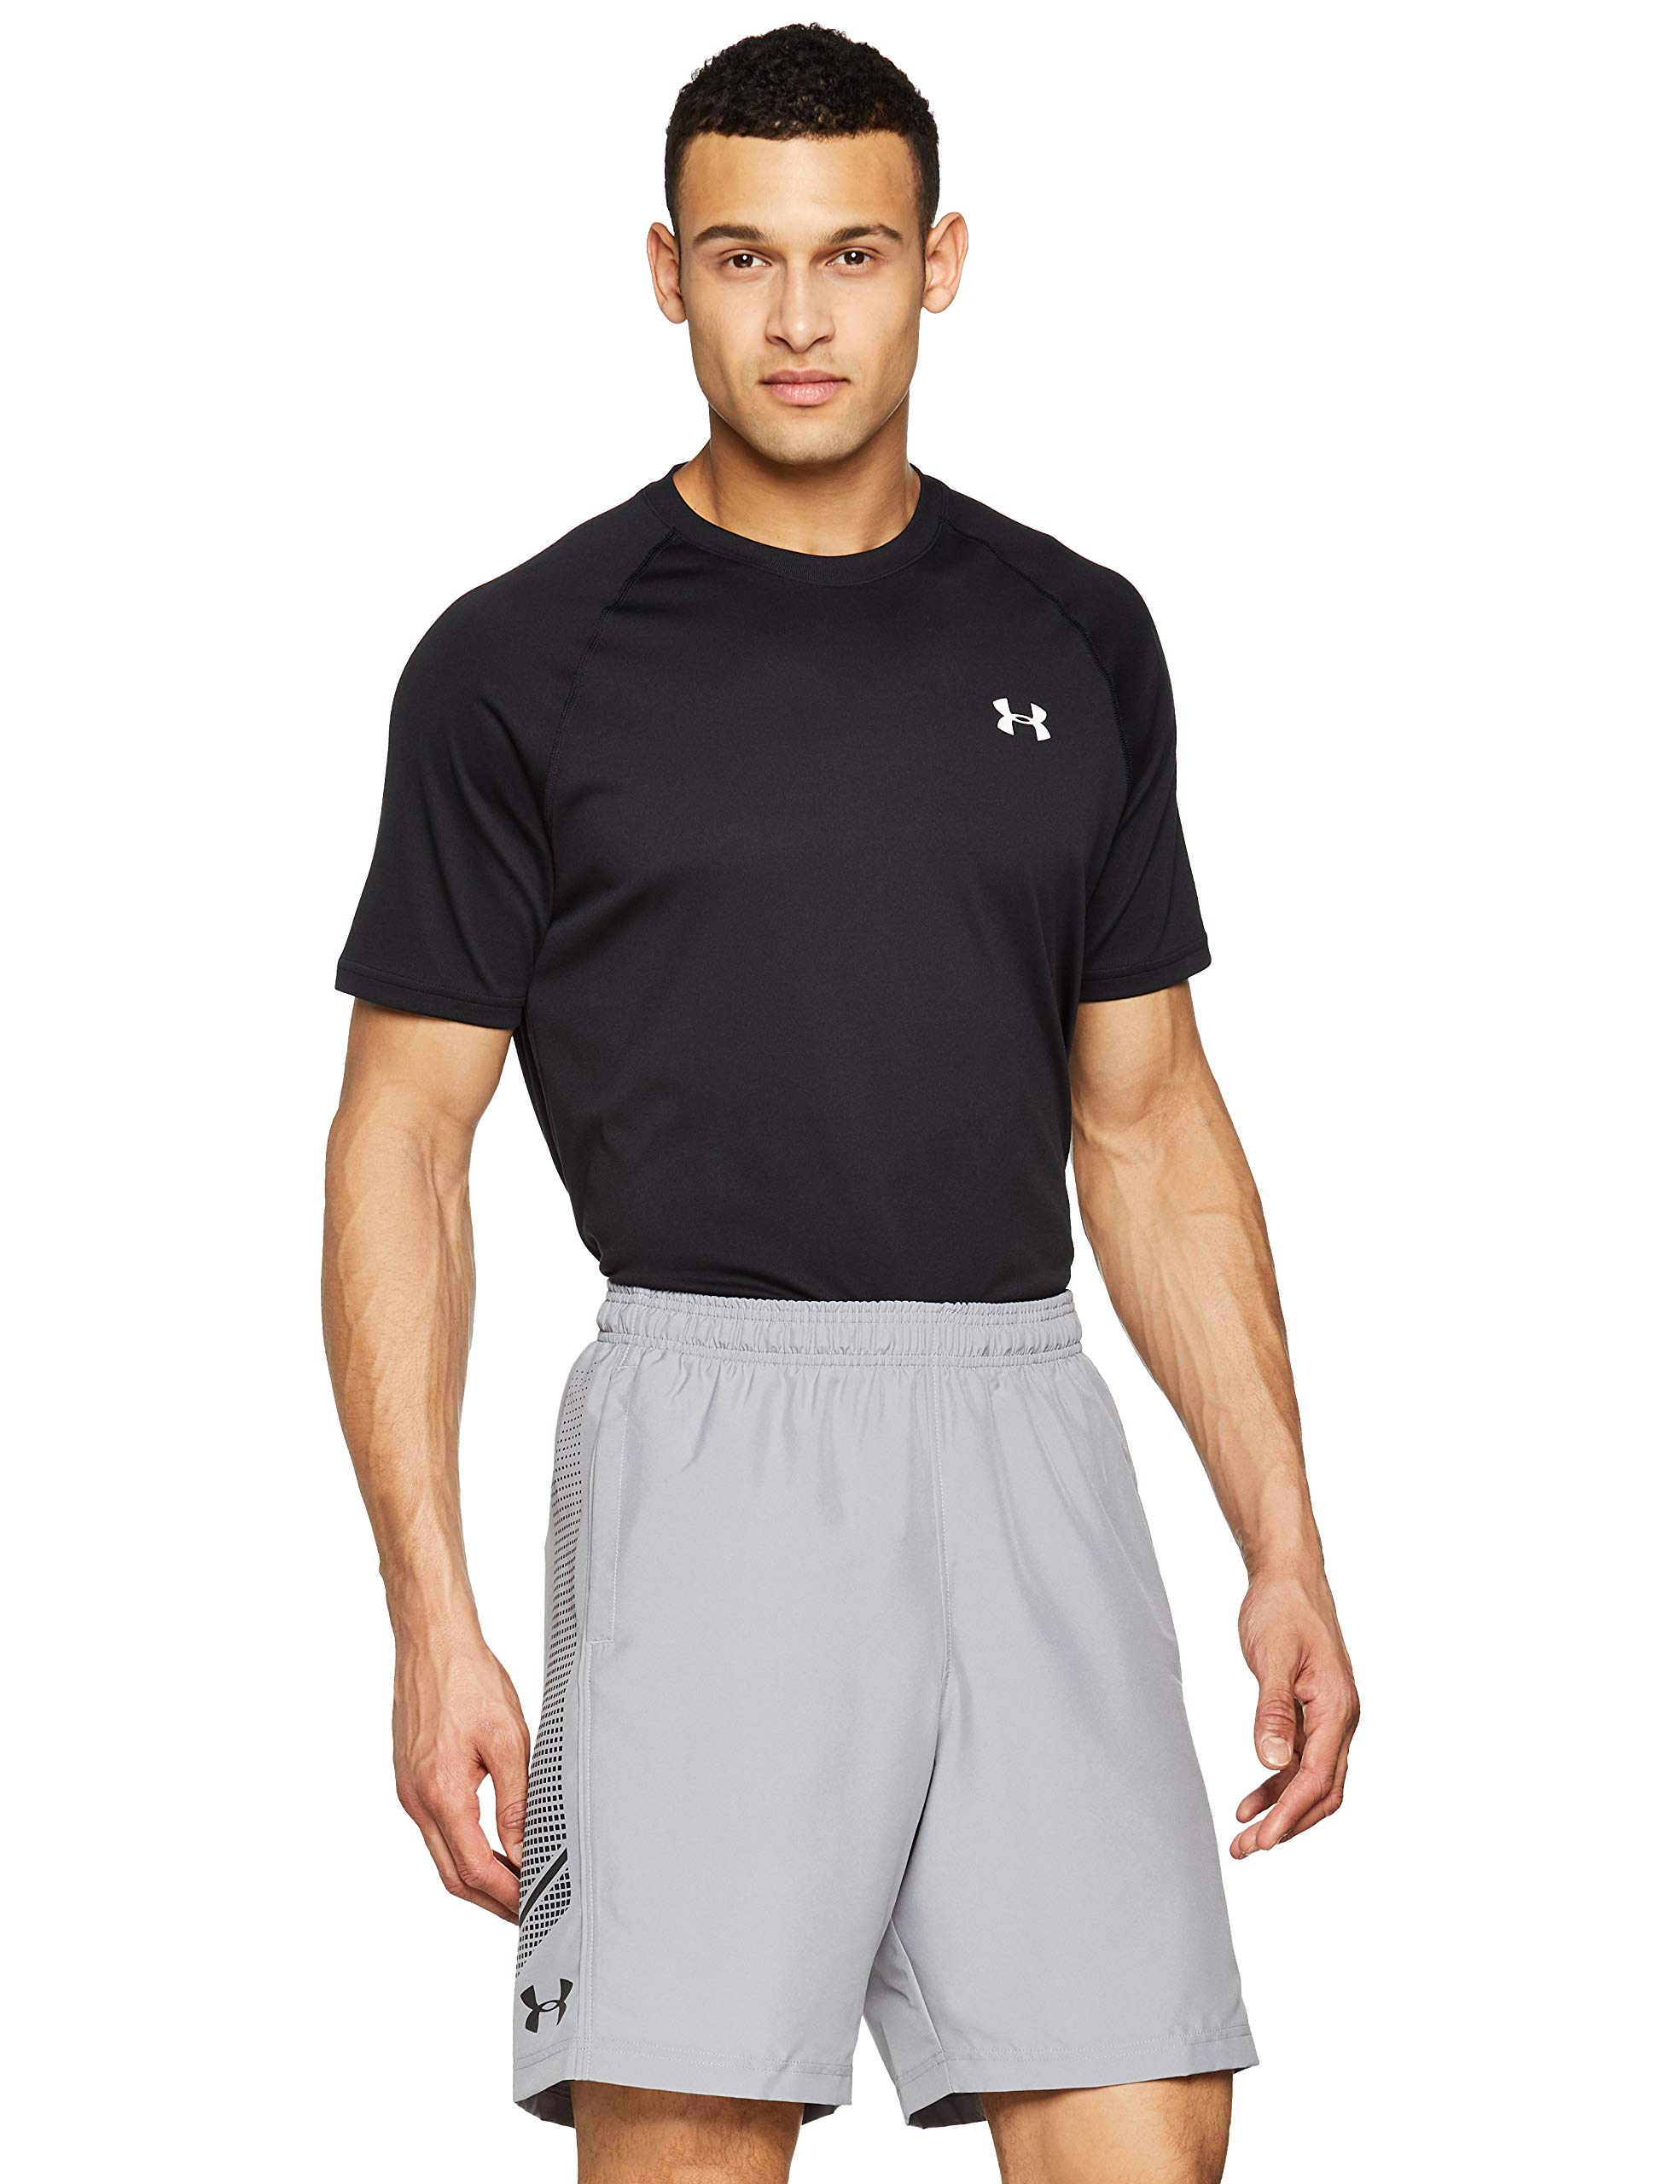 Under Armour Men's Woven Graphic Shorts, Steel (035)/Black, Small by Under Armour